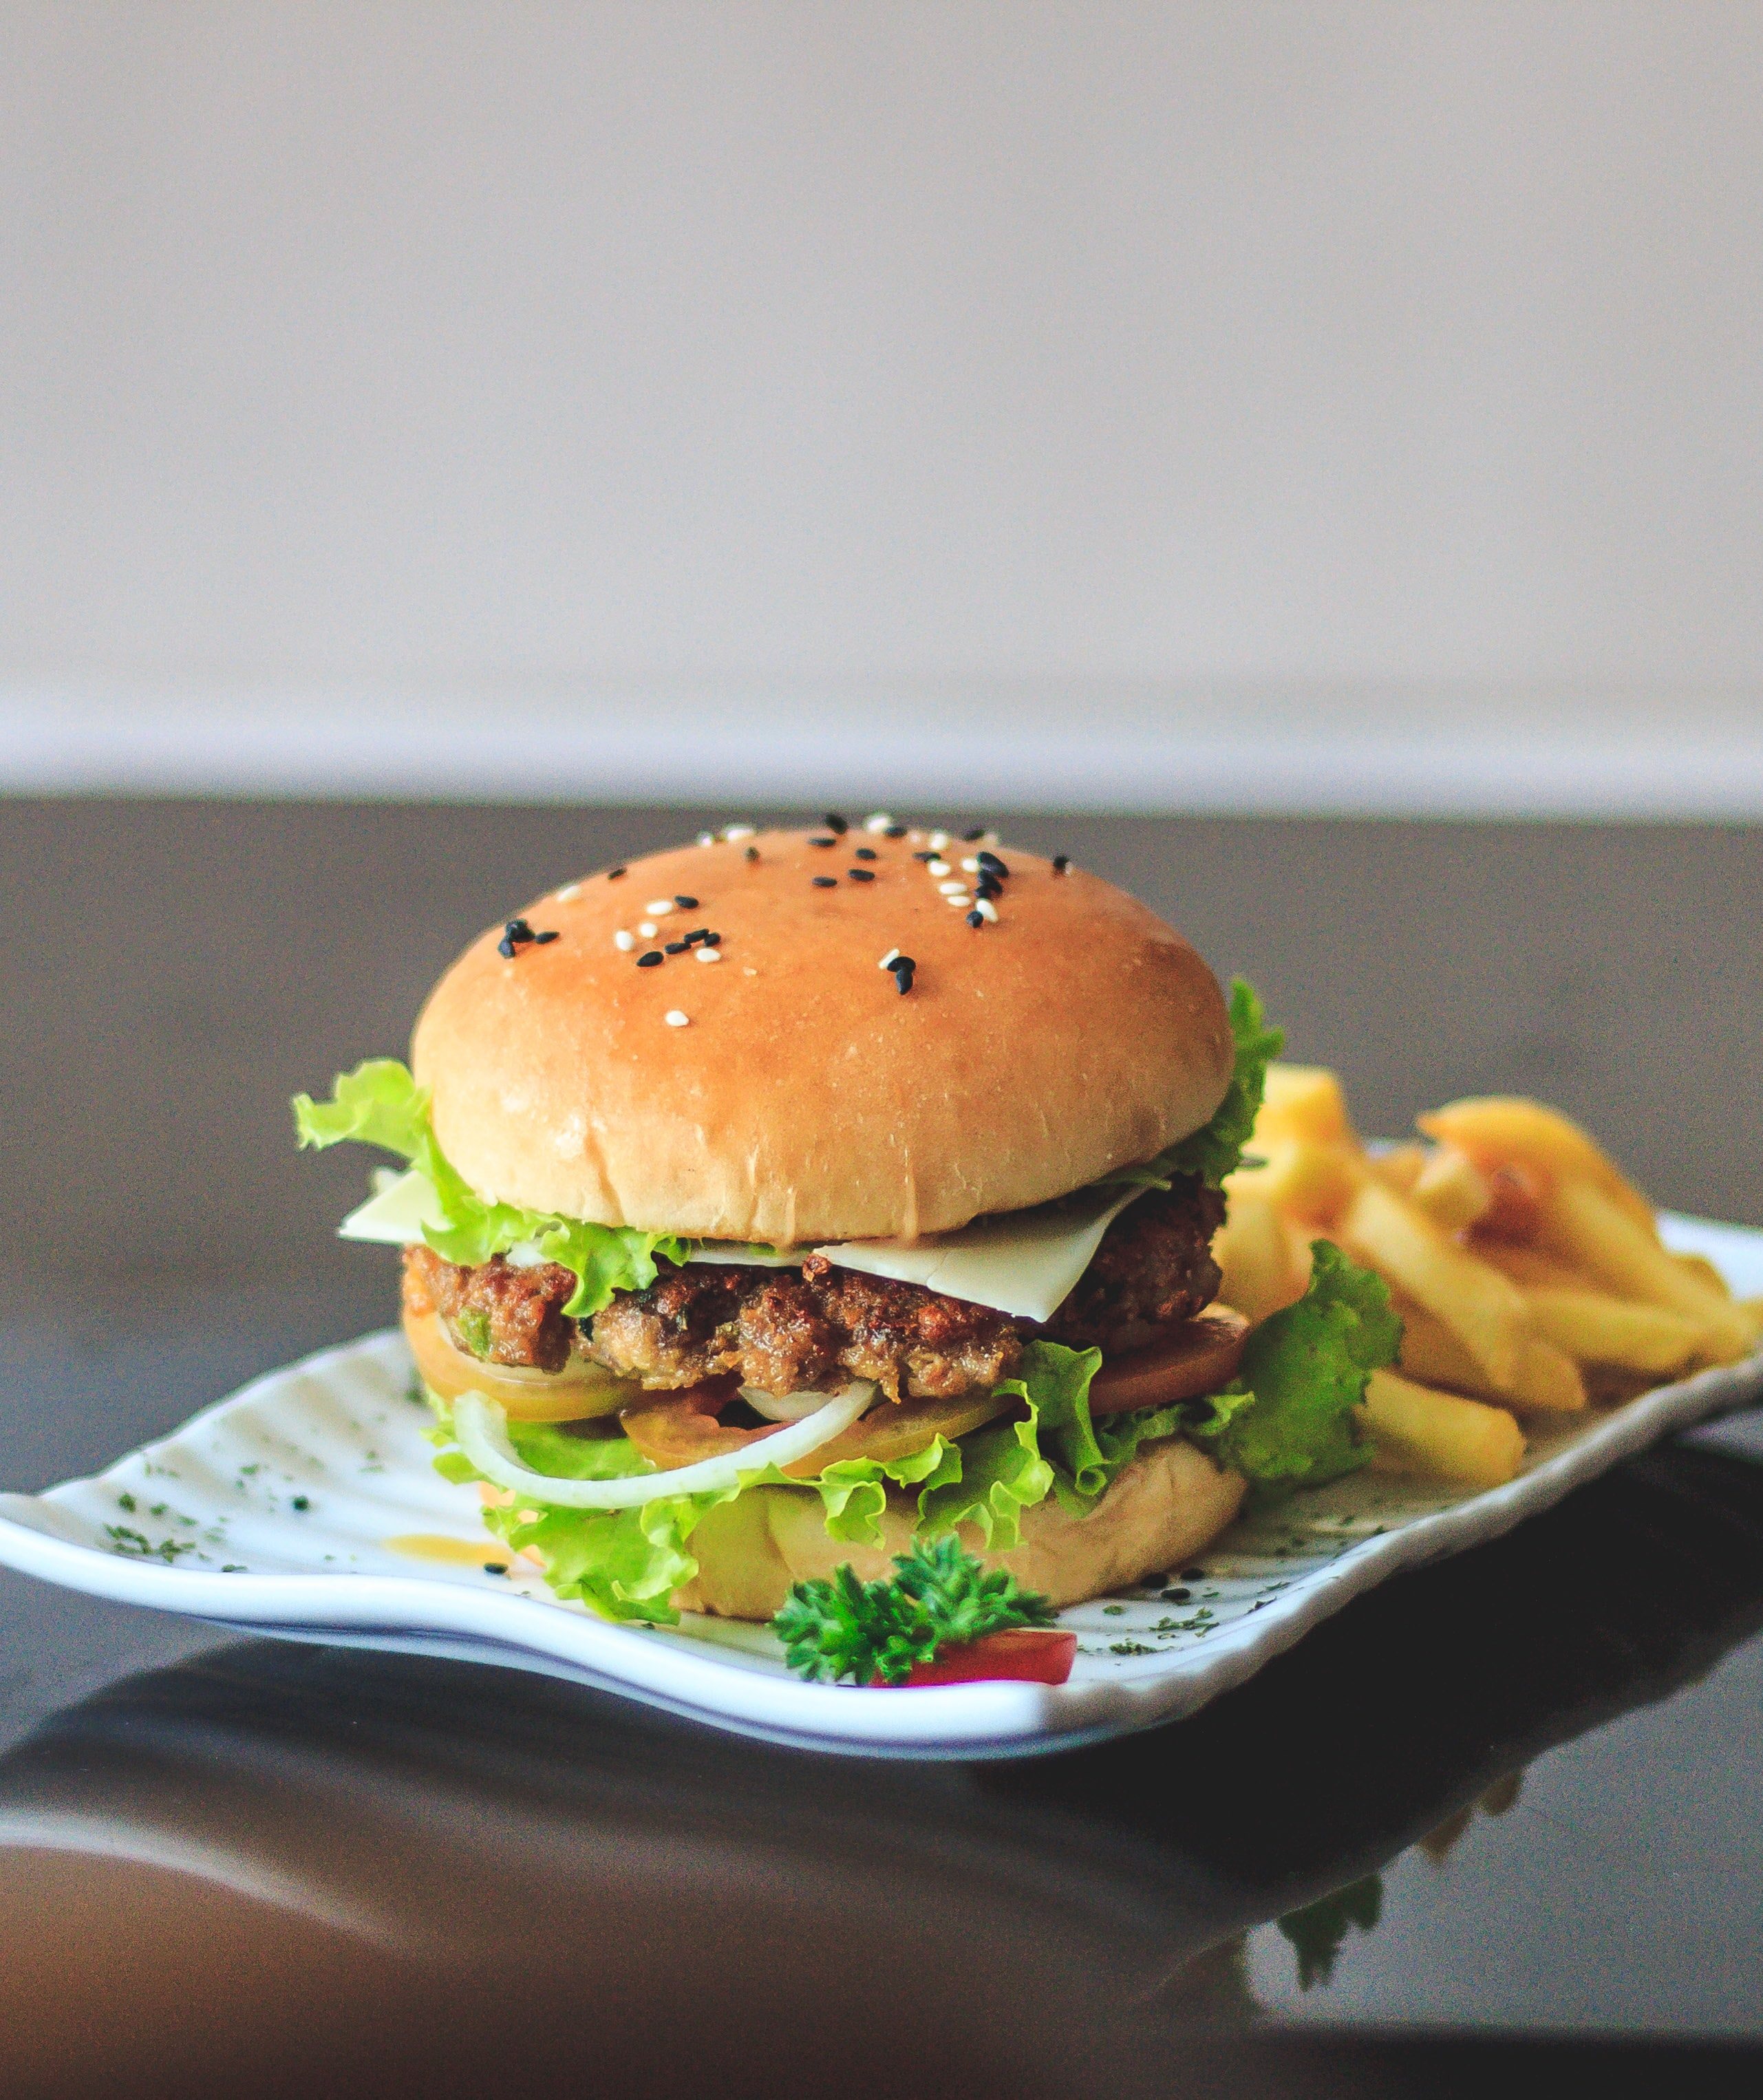 hamburger with lettuce and fries on white ceramic plate